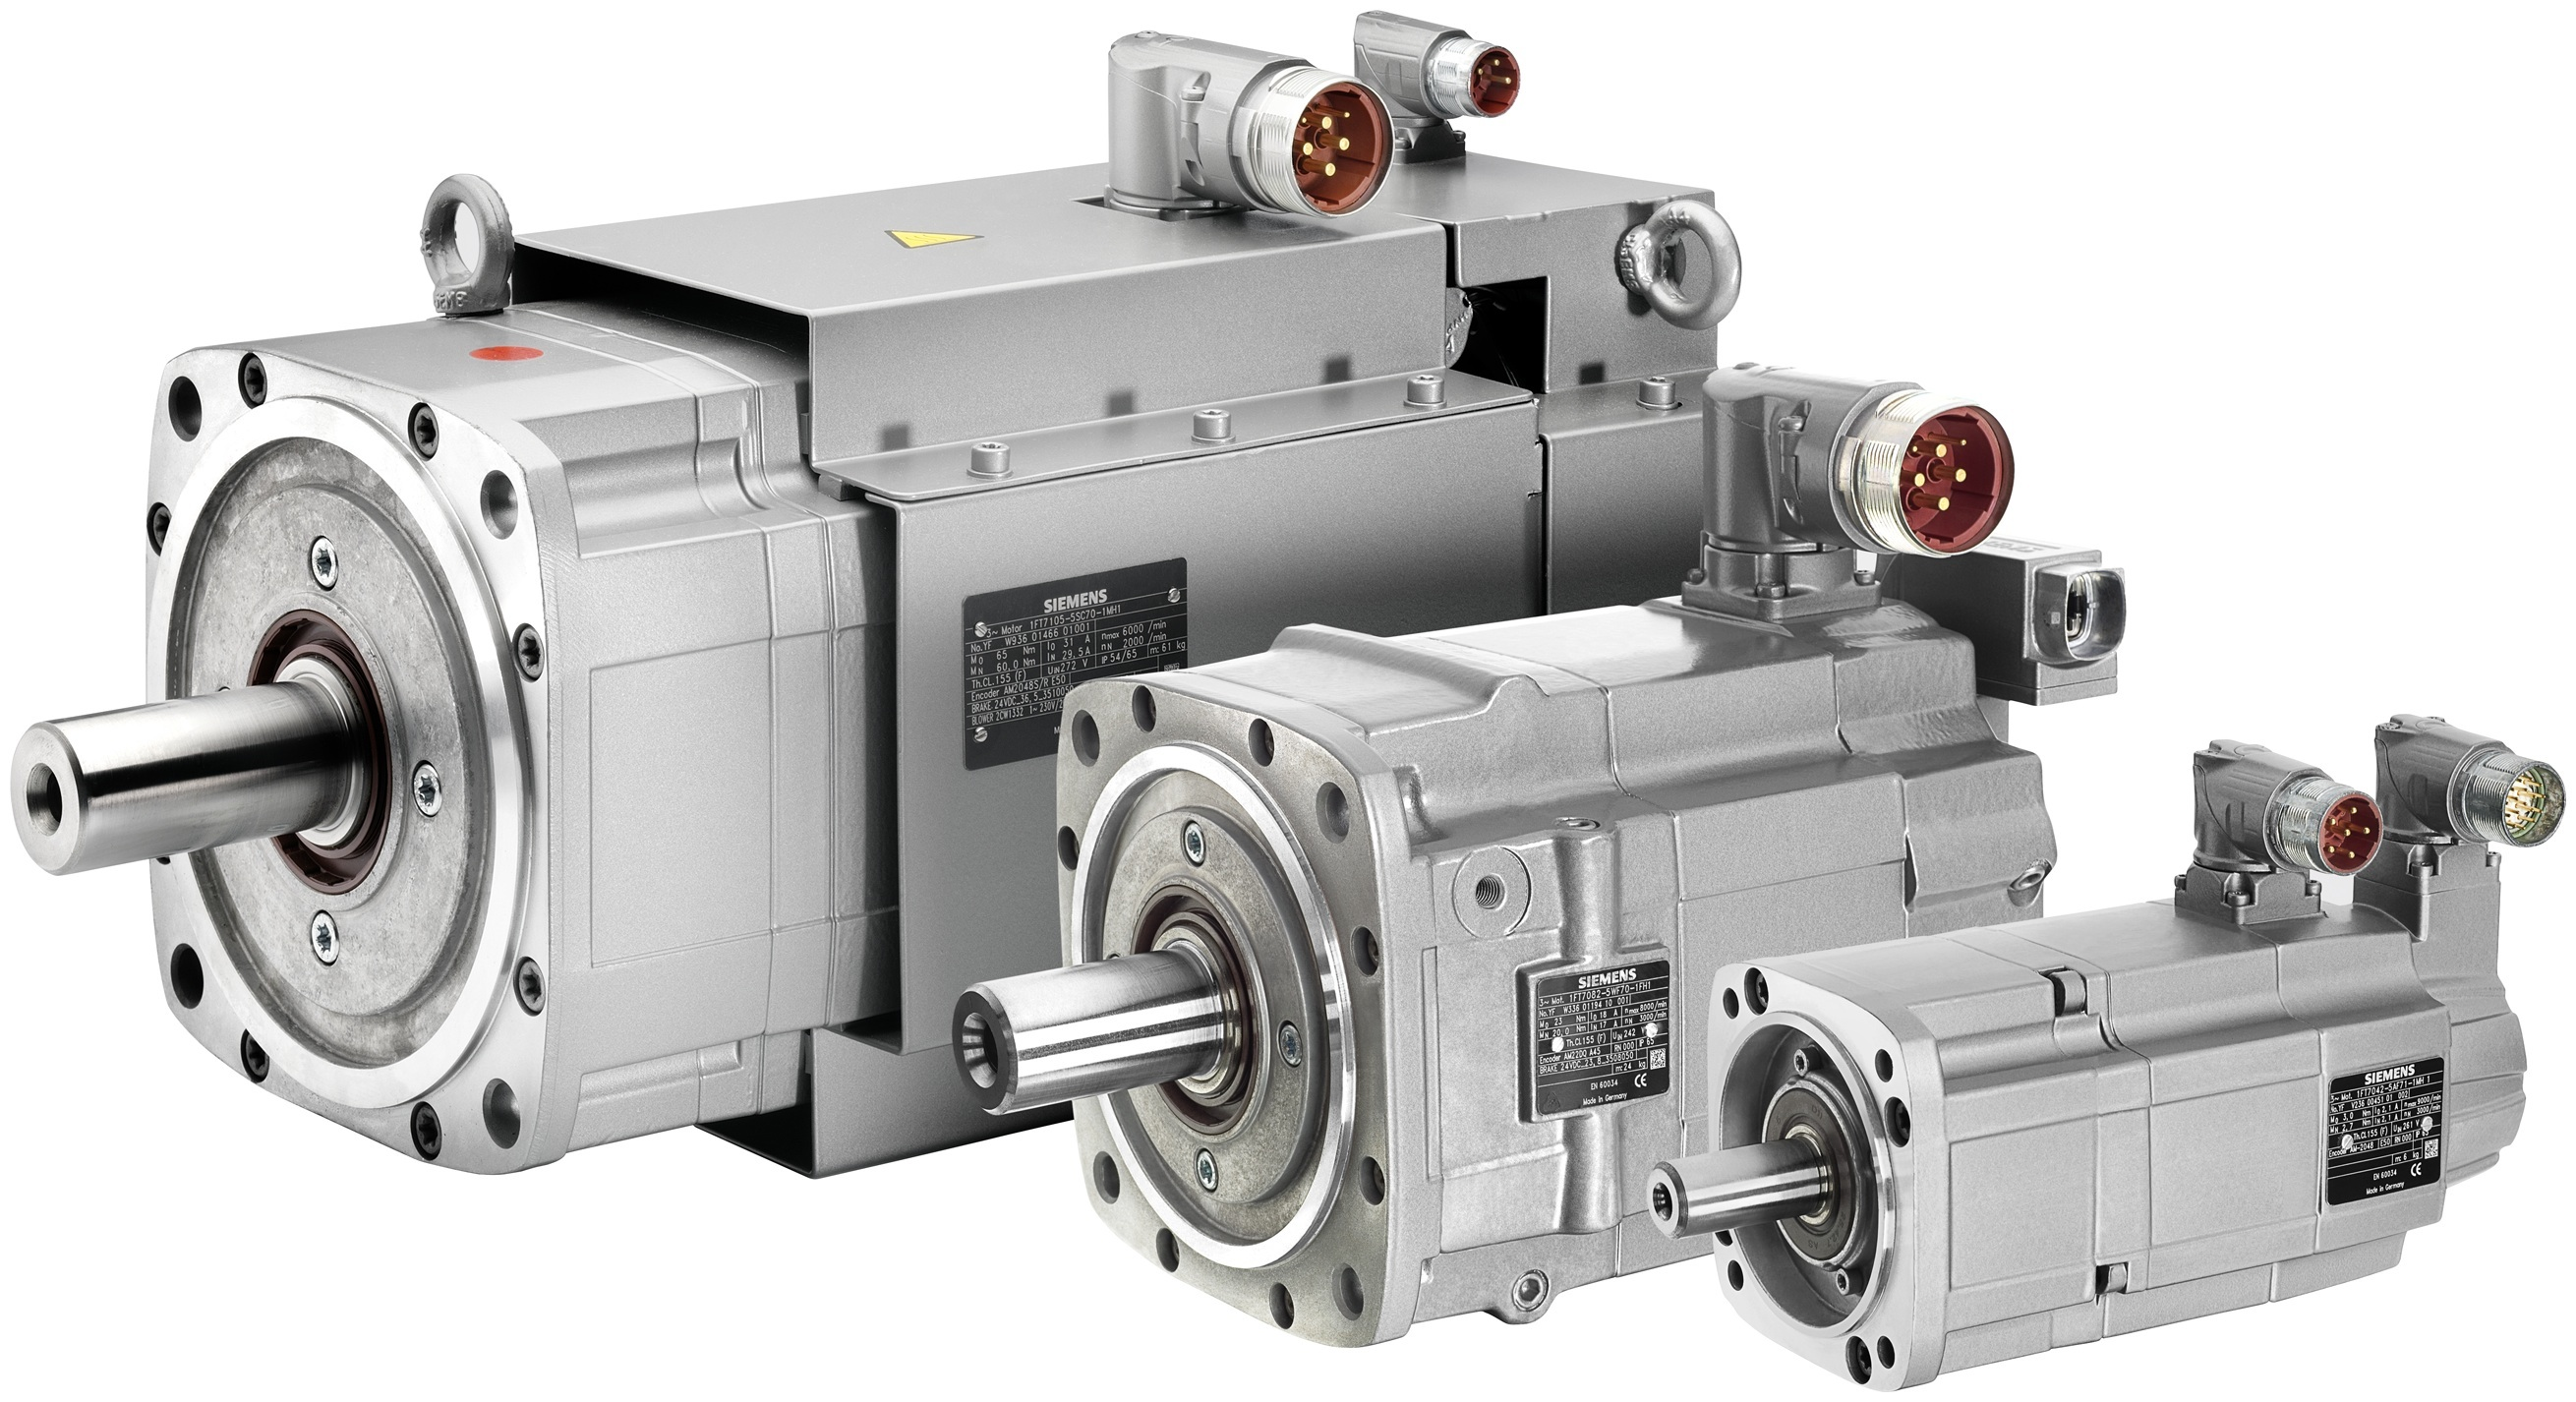 new high performance compact servo motors for demanding